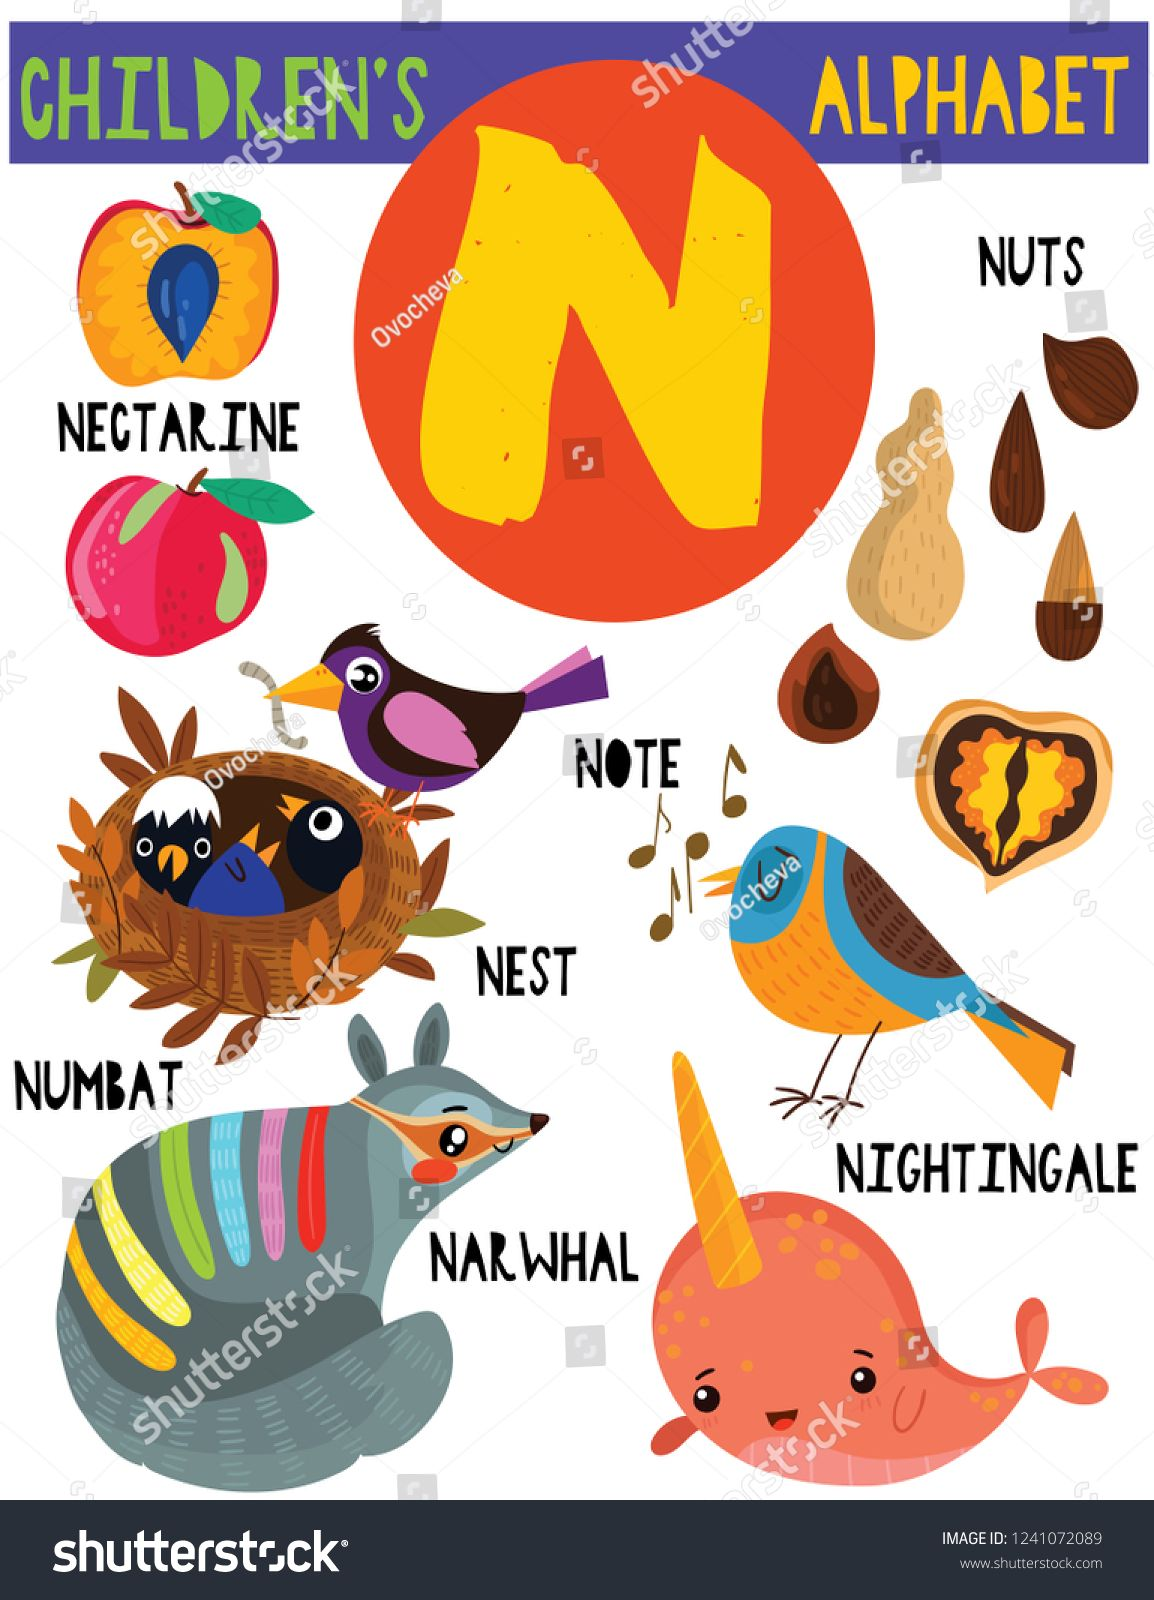 Letter N Cute Children S Alphabet With Adorable Animals And Other Things Poster For Kids Learning English Vocabu Childrens Alphabet Cute Animals Animal Posters